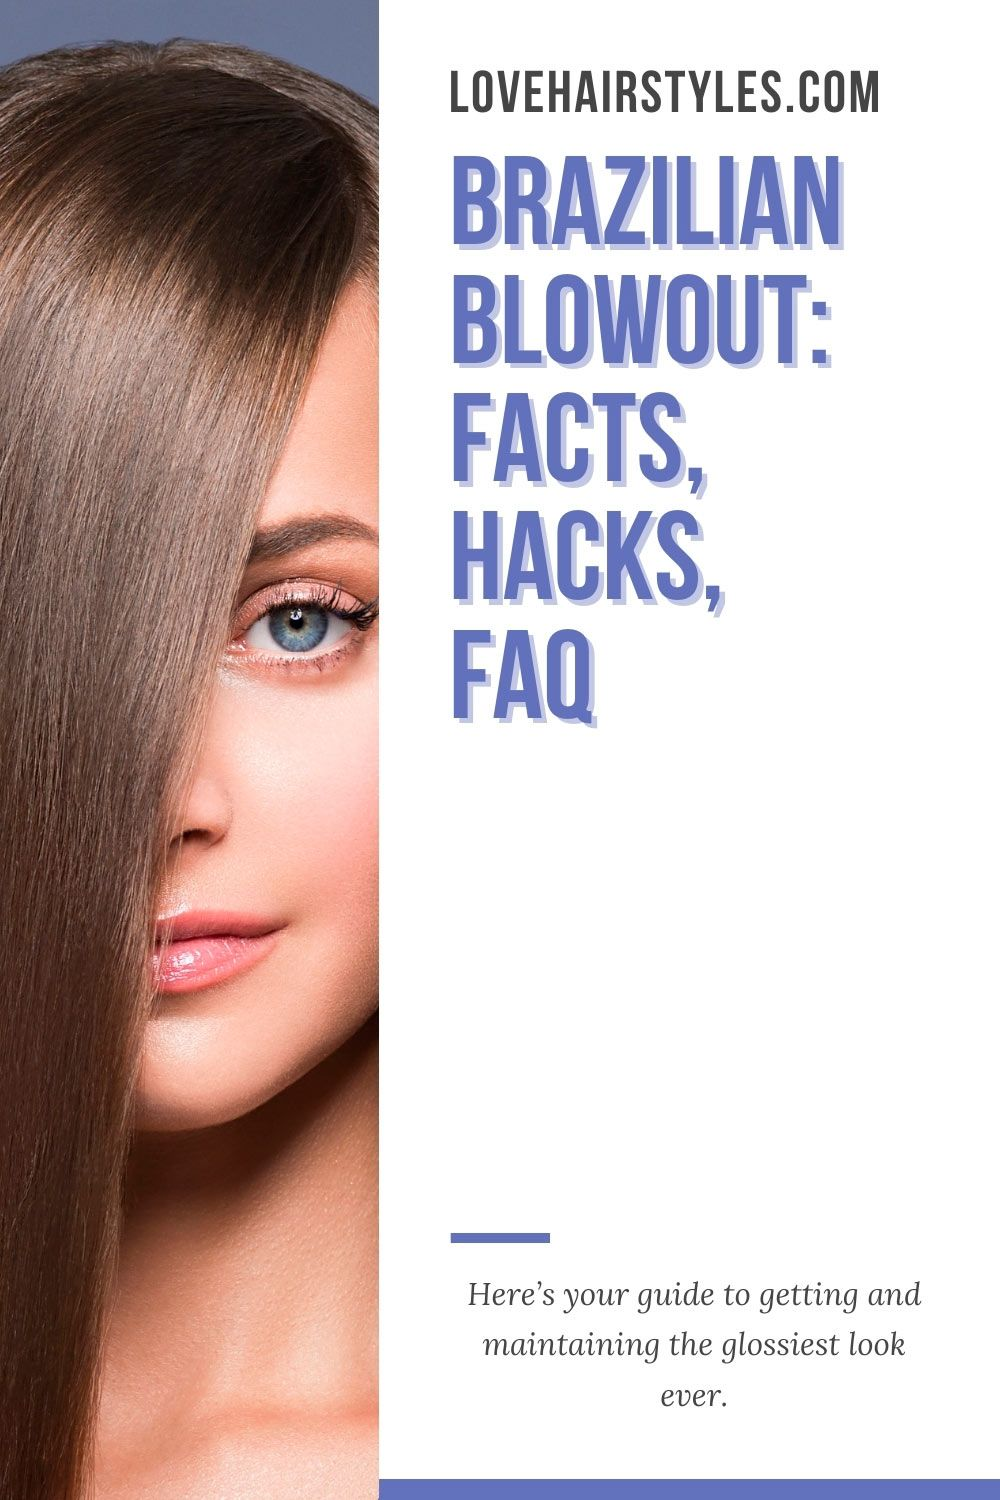 So What Is a Brazilian Blowout & What Should I Know Before Getting It?